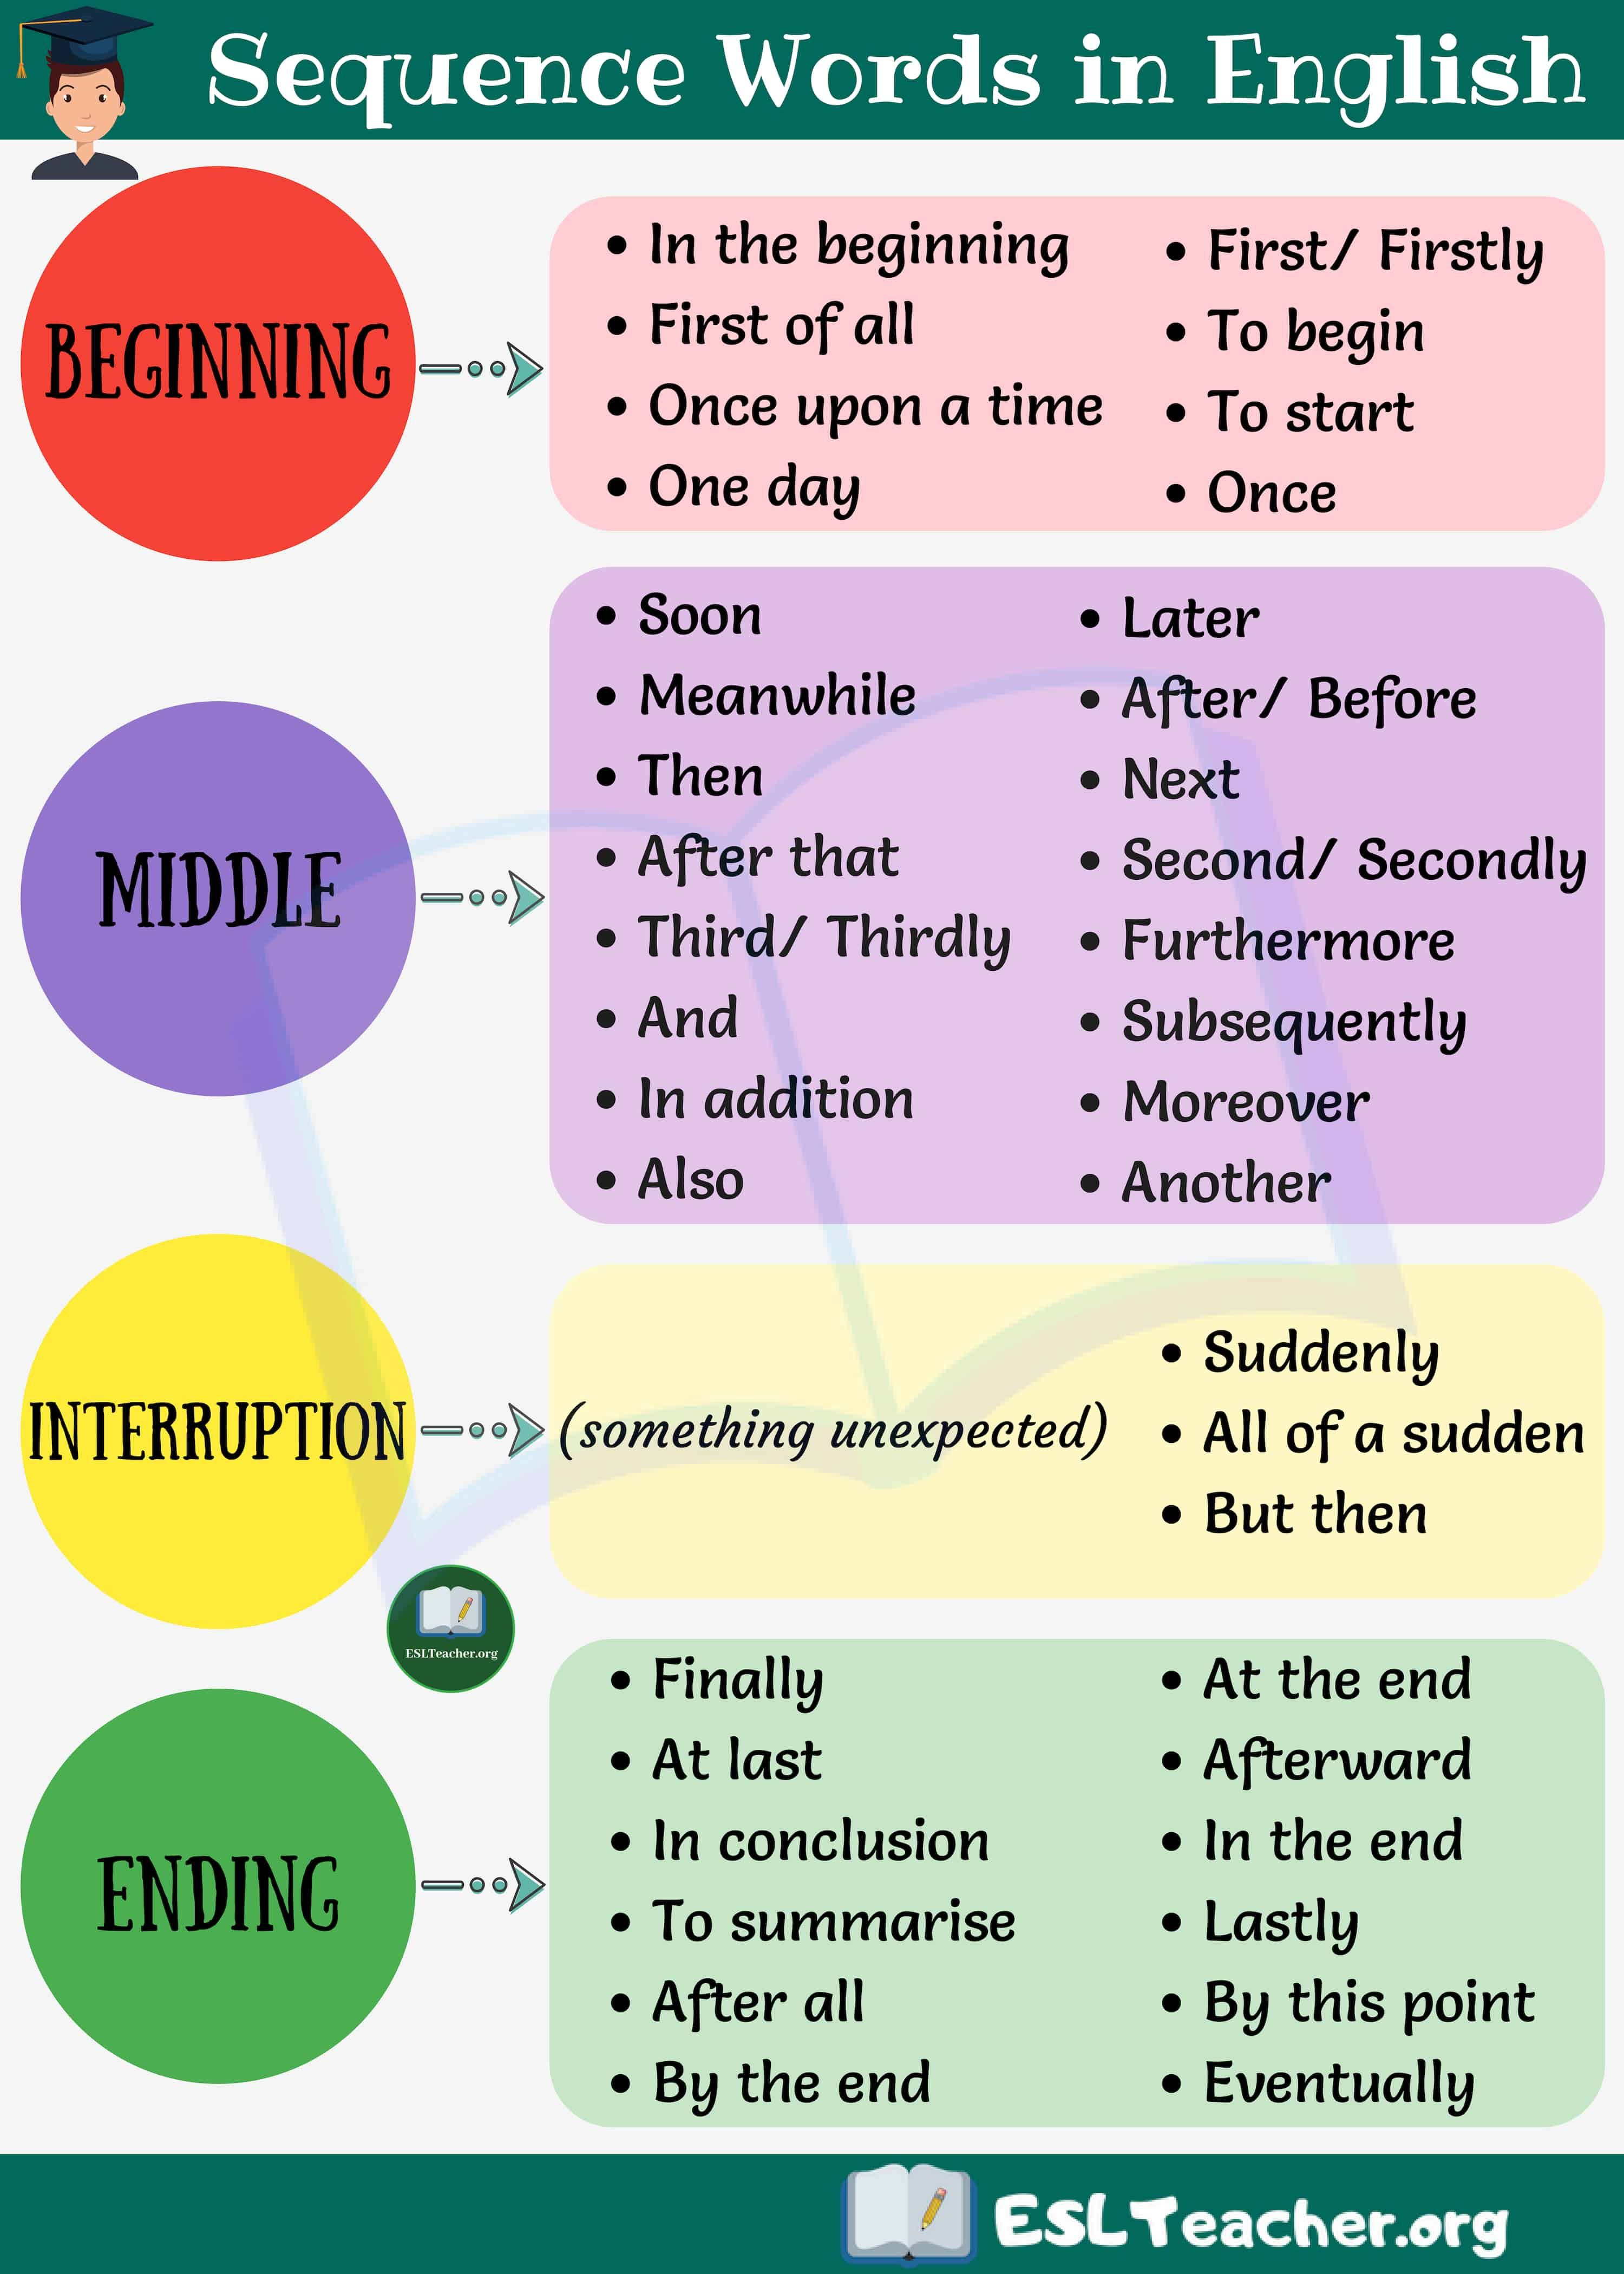 small resolution of Useful Sequence Words in English   Essay writing skills